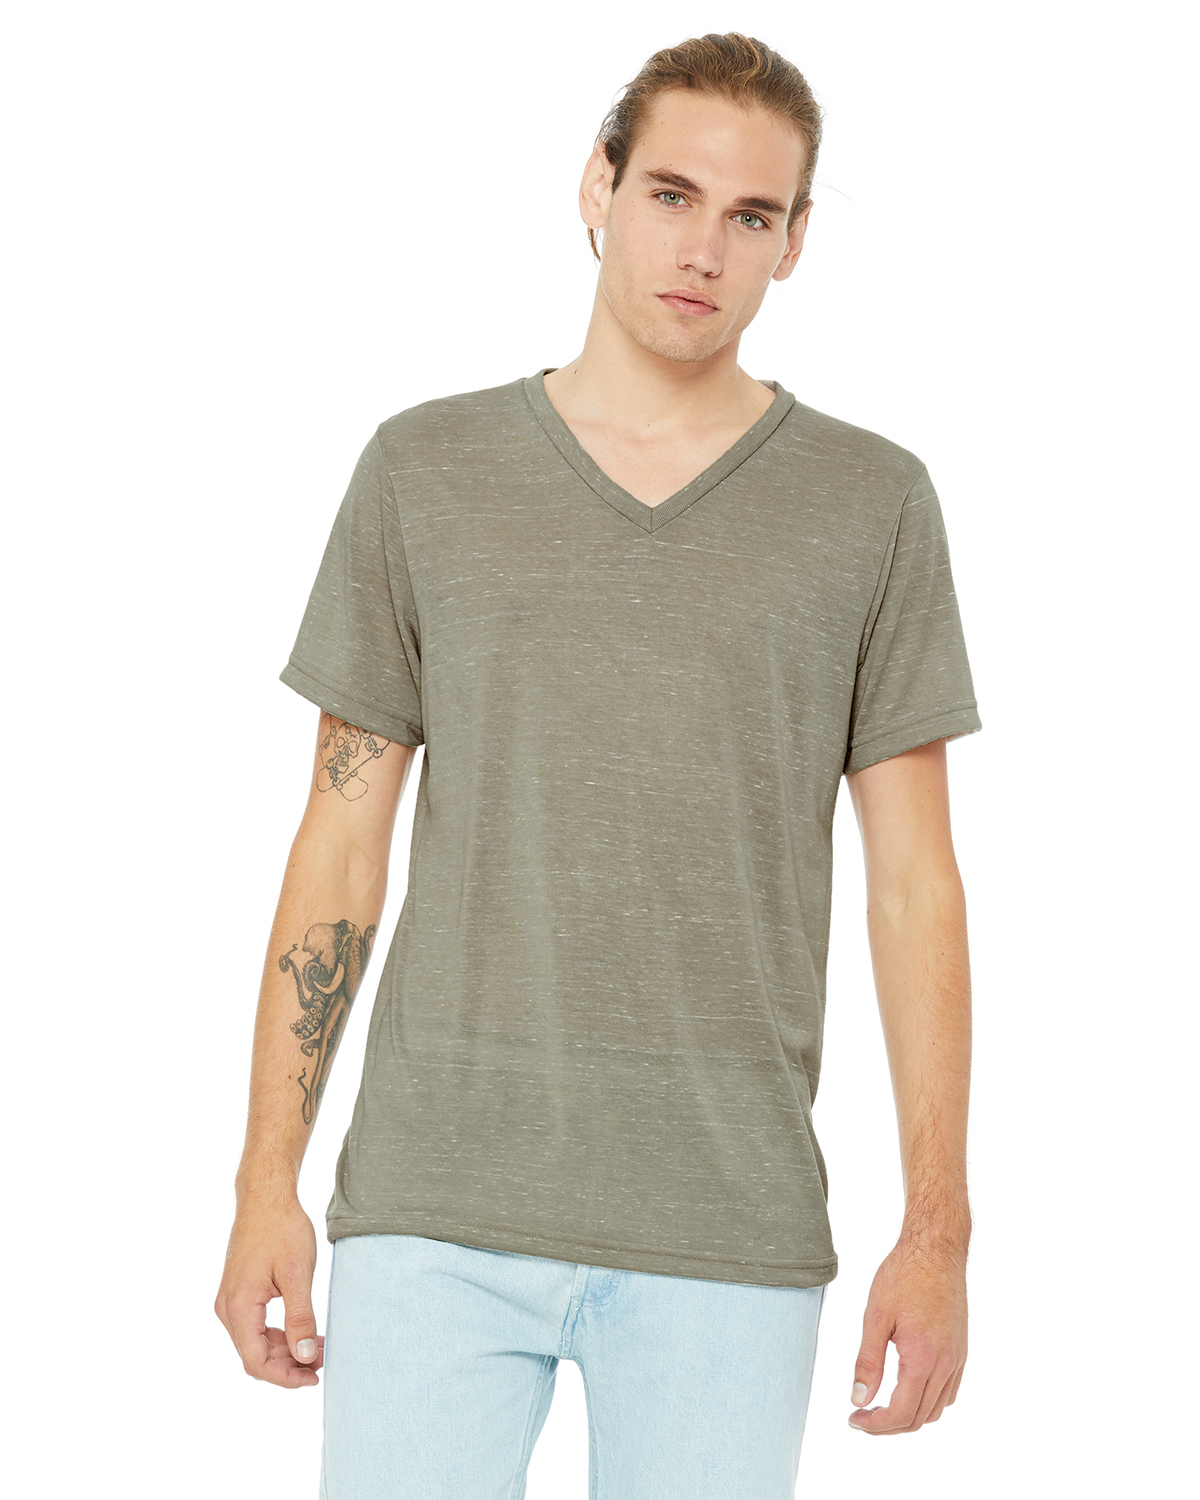 Unisex Casual O-Neck Short Sleeve Solid Quick Drying T-Shirt Top OK